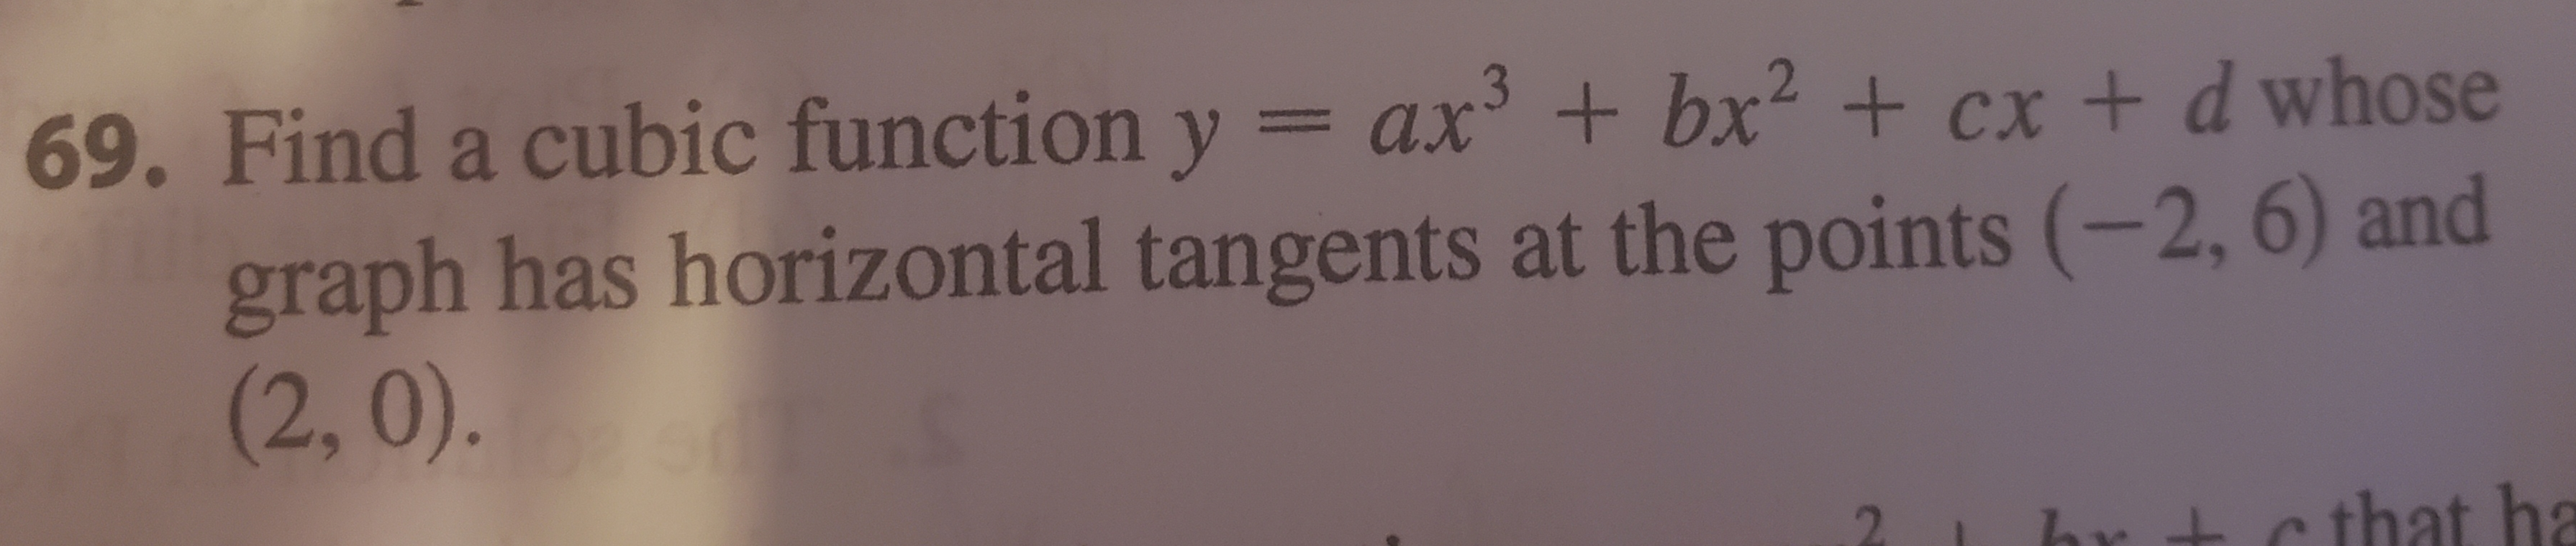 69. Find a cubic function y graph has horizontal tangents at the points (-2, 6) and (2, 0). = ax +bx +cx + d whose c that ha